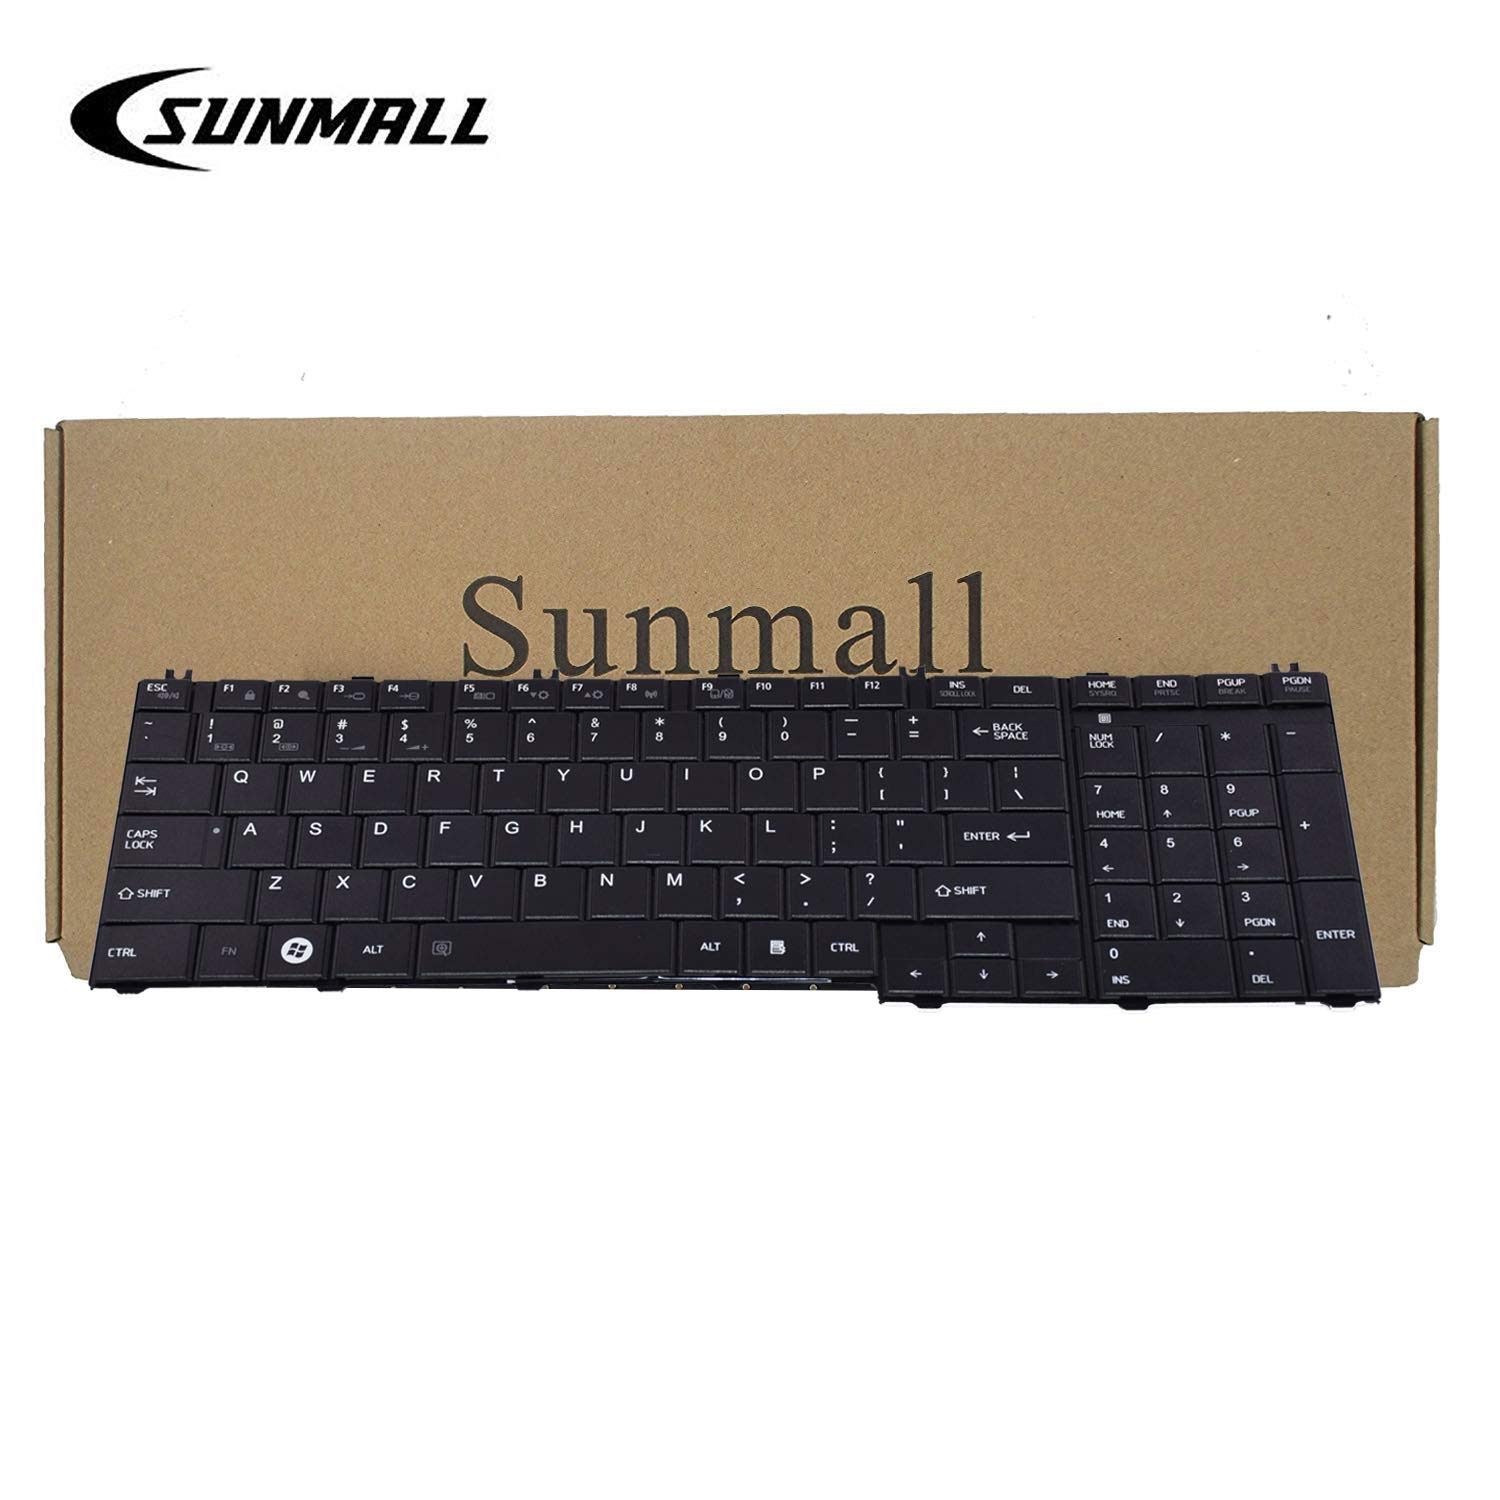 SUNMALL Keyboard Replacement Compatible with Toshiba Satellite C650 C650D C655 C655D C660 C660D C665 C665D L550 L550D L650 L650D L655 L655D L670 L670D L675 L675D L770 L750D L755 B350 Series Laptop